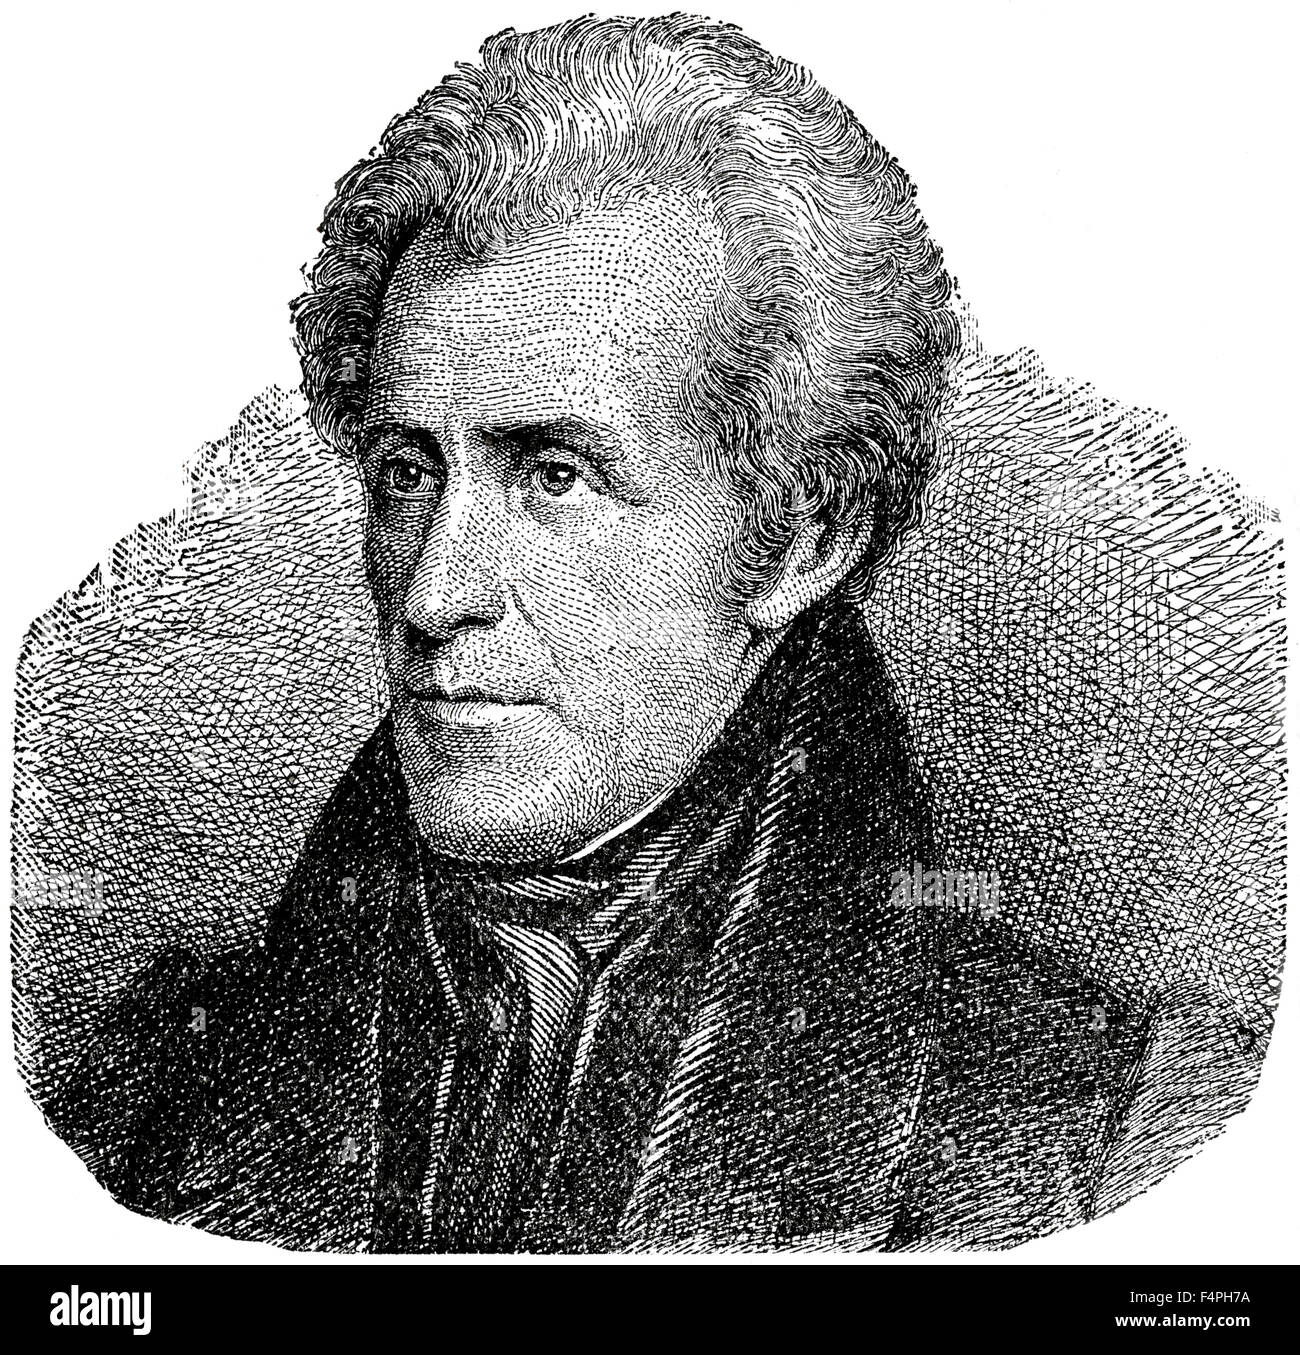 Andrew Jackson (1767-1845), 7th President of the United States, Engraving, 1889 - Stock Image